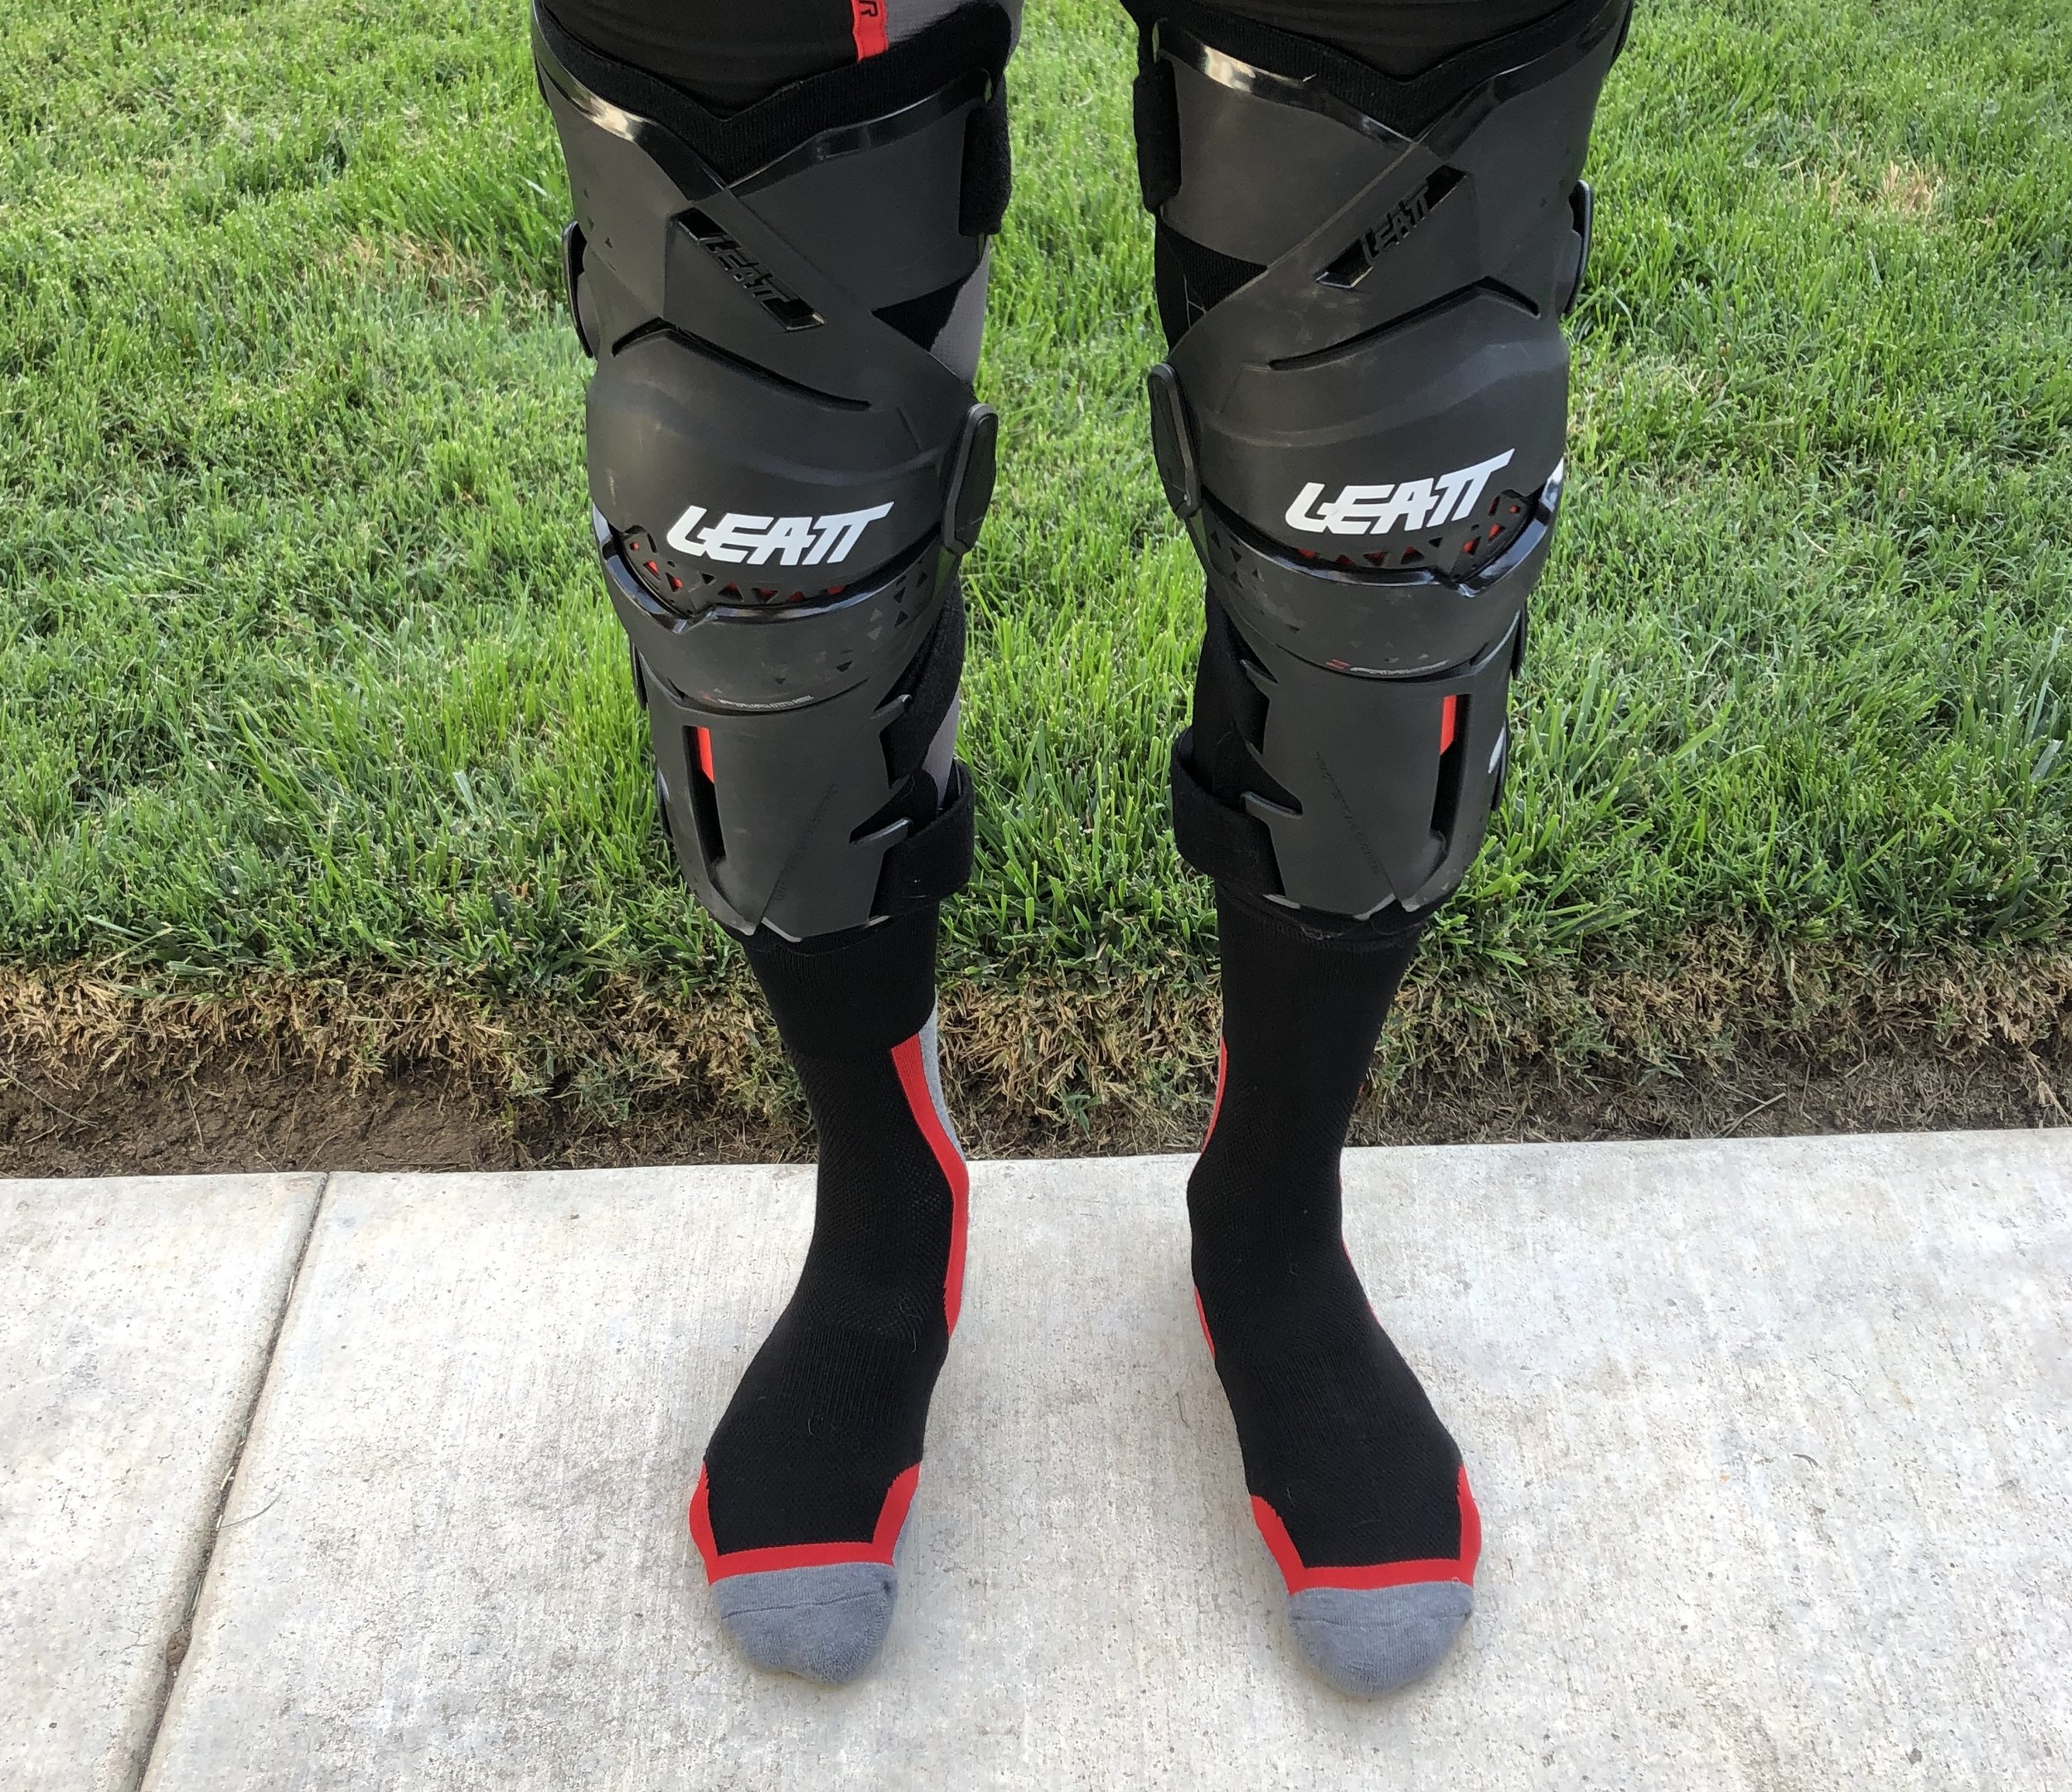 2fd5186c43 Once on, the Z Frame braces are noticeably bulkier than the X Frames,  especially in the knee cup area. To me the knee cup area was excessively  large and I ...